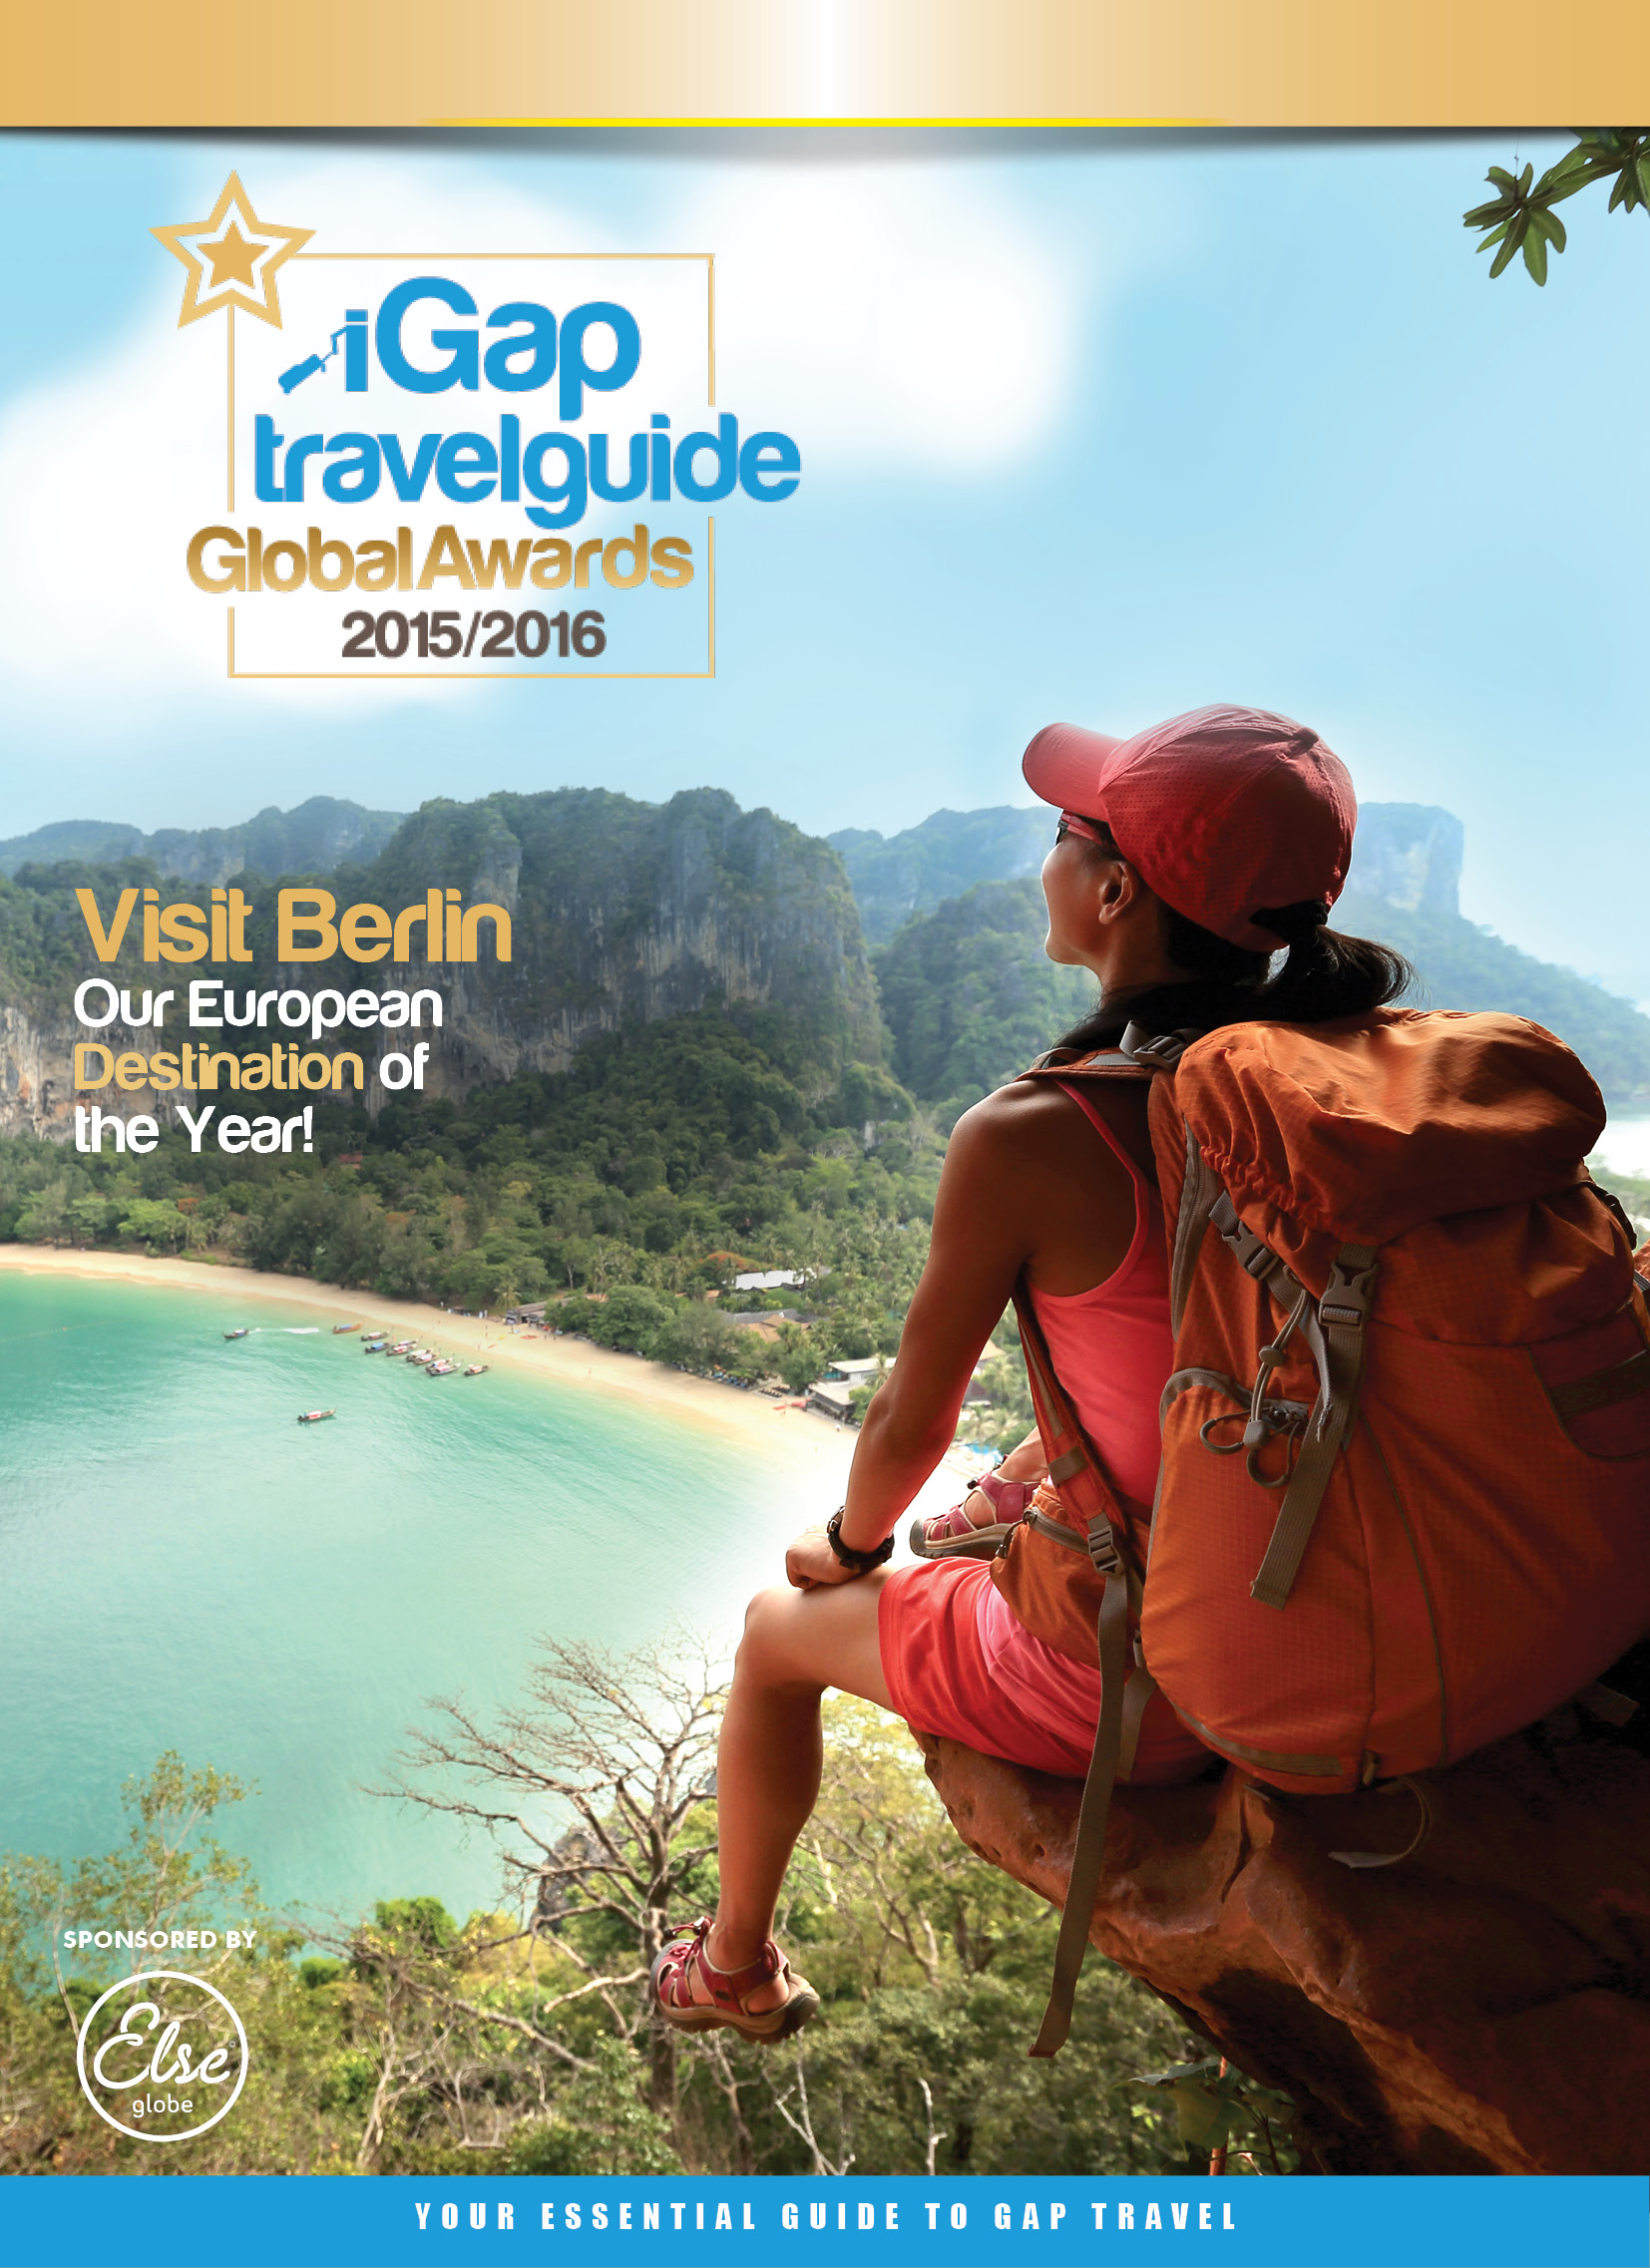 iGap Travel Guide: Global Awards 2015/2016 - Cover Image